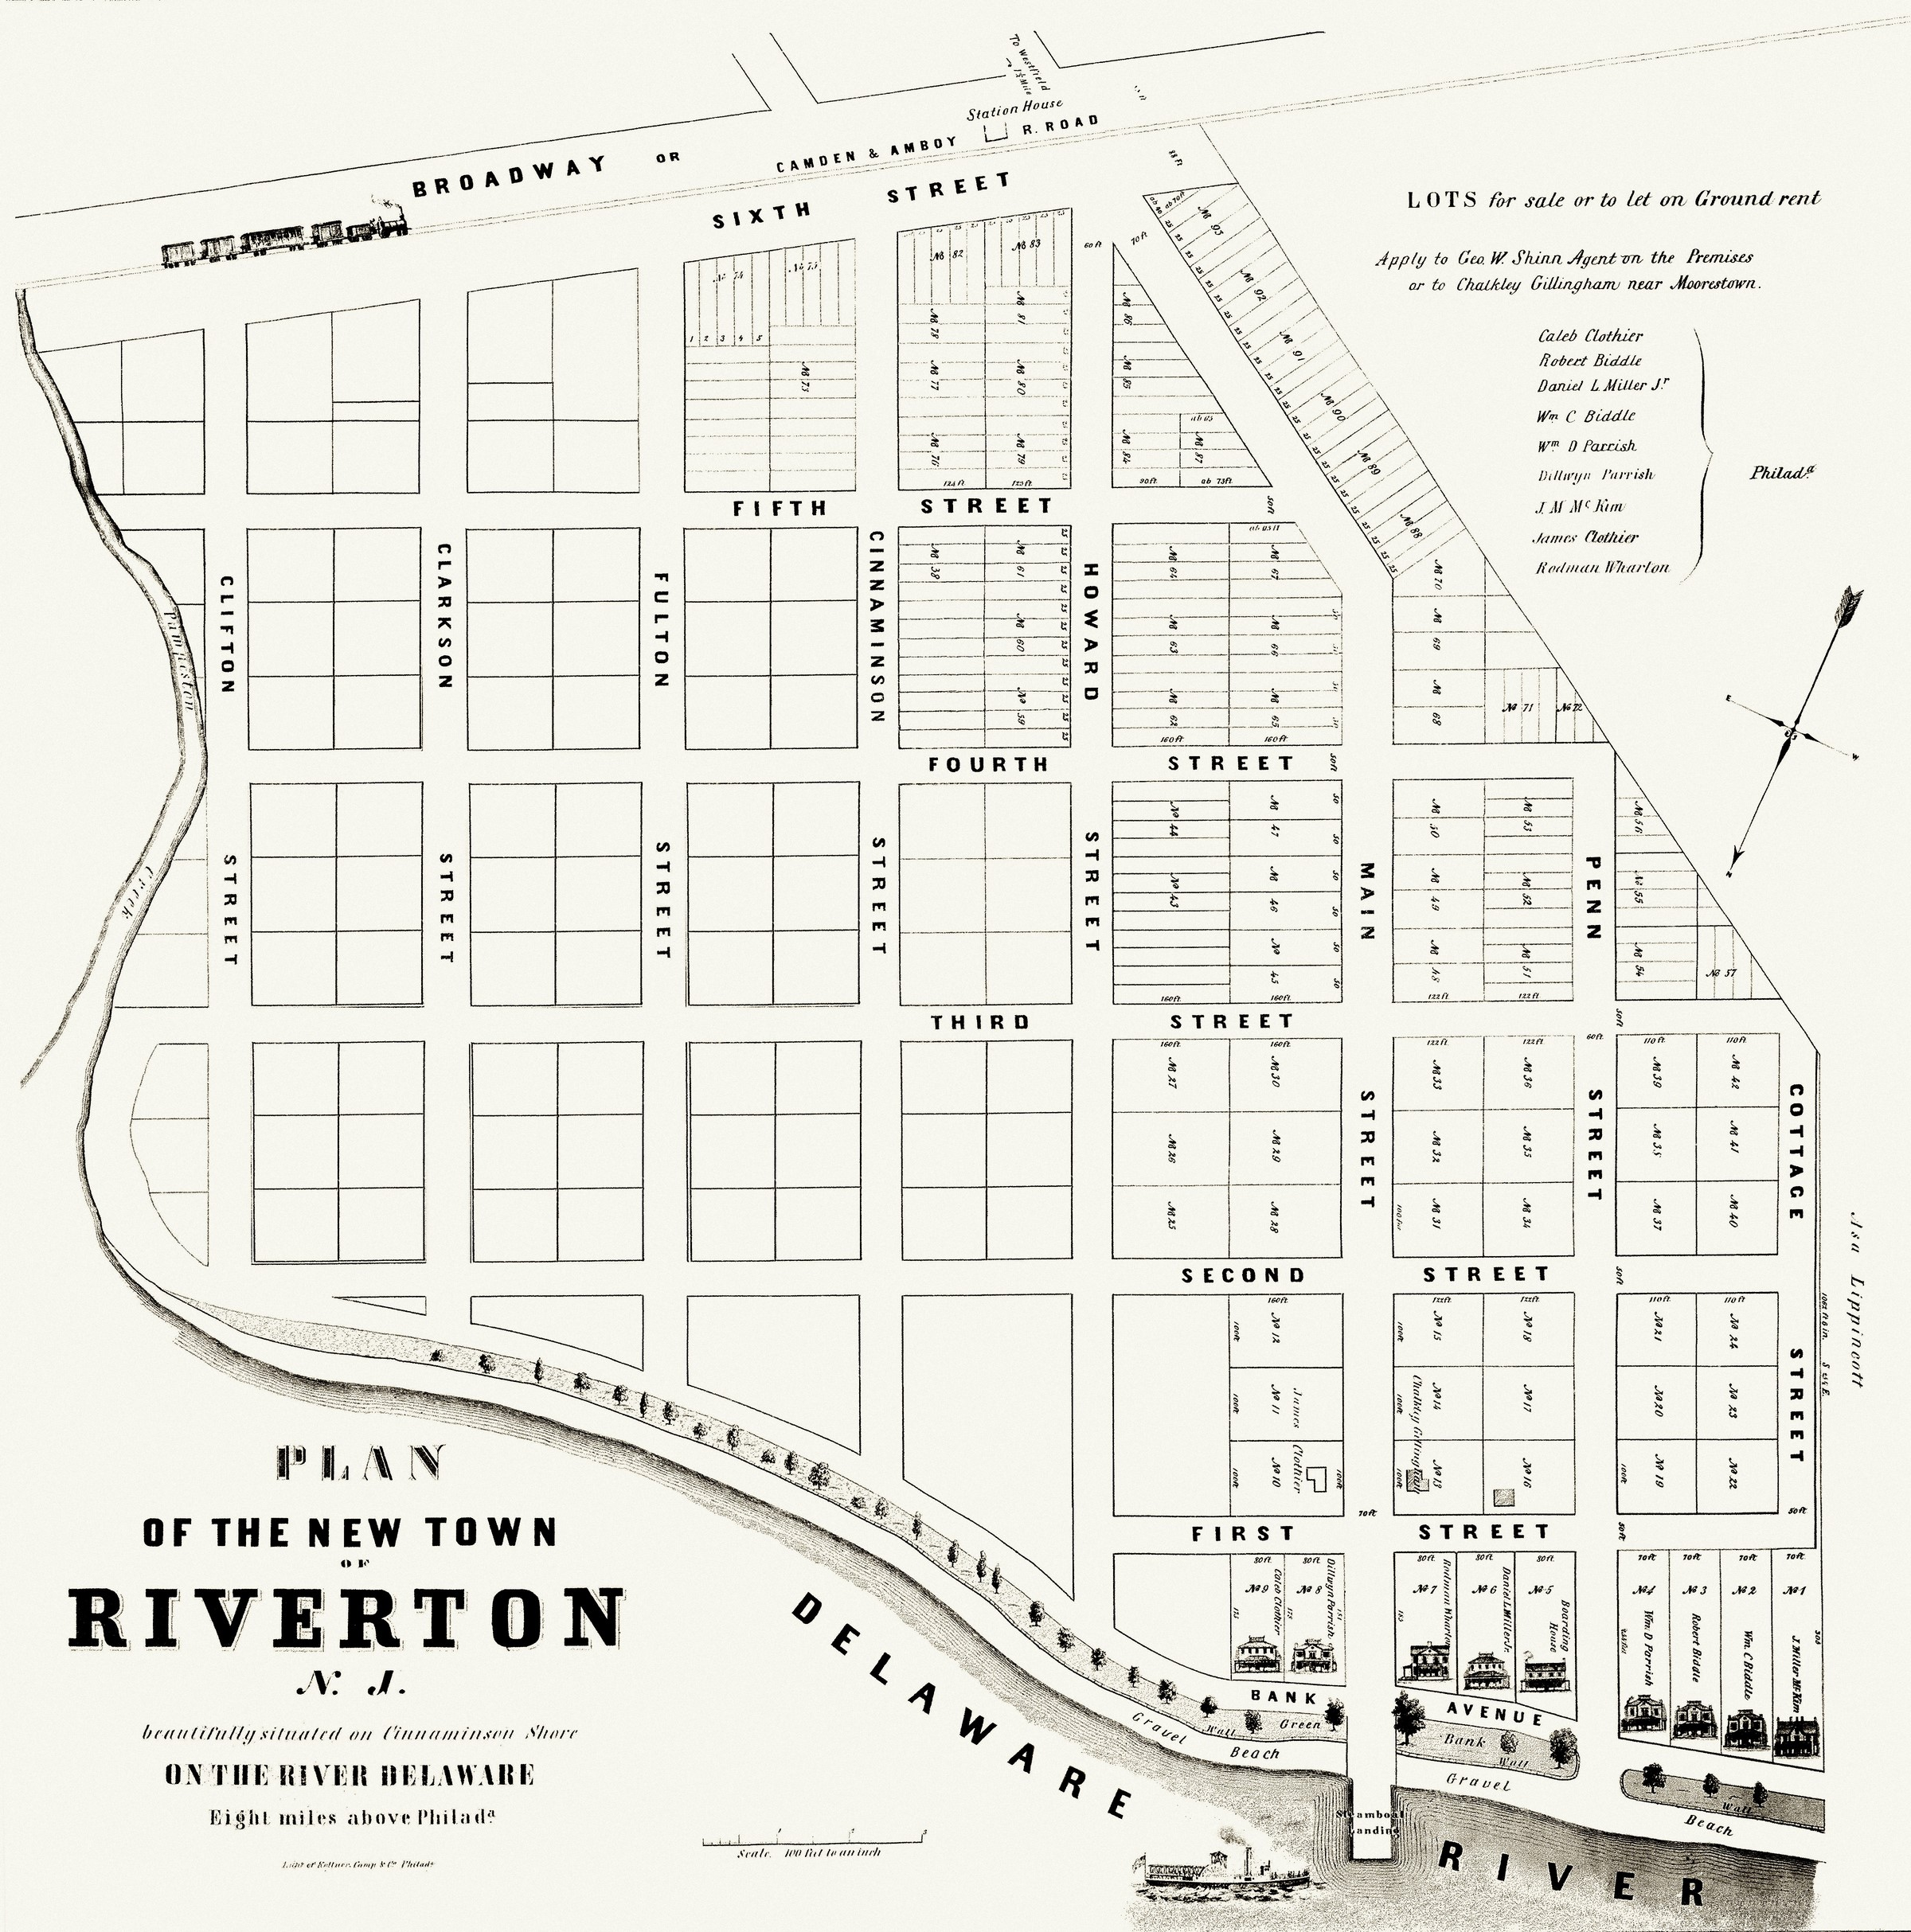 Plan of the new town of riverton historical society of for The riverton